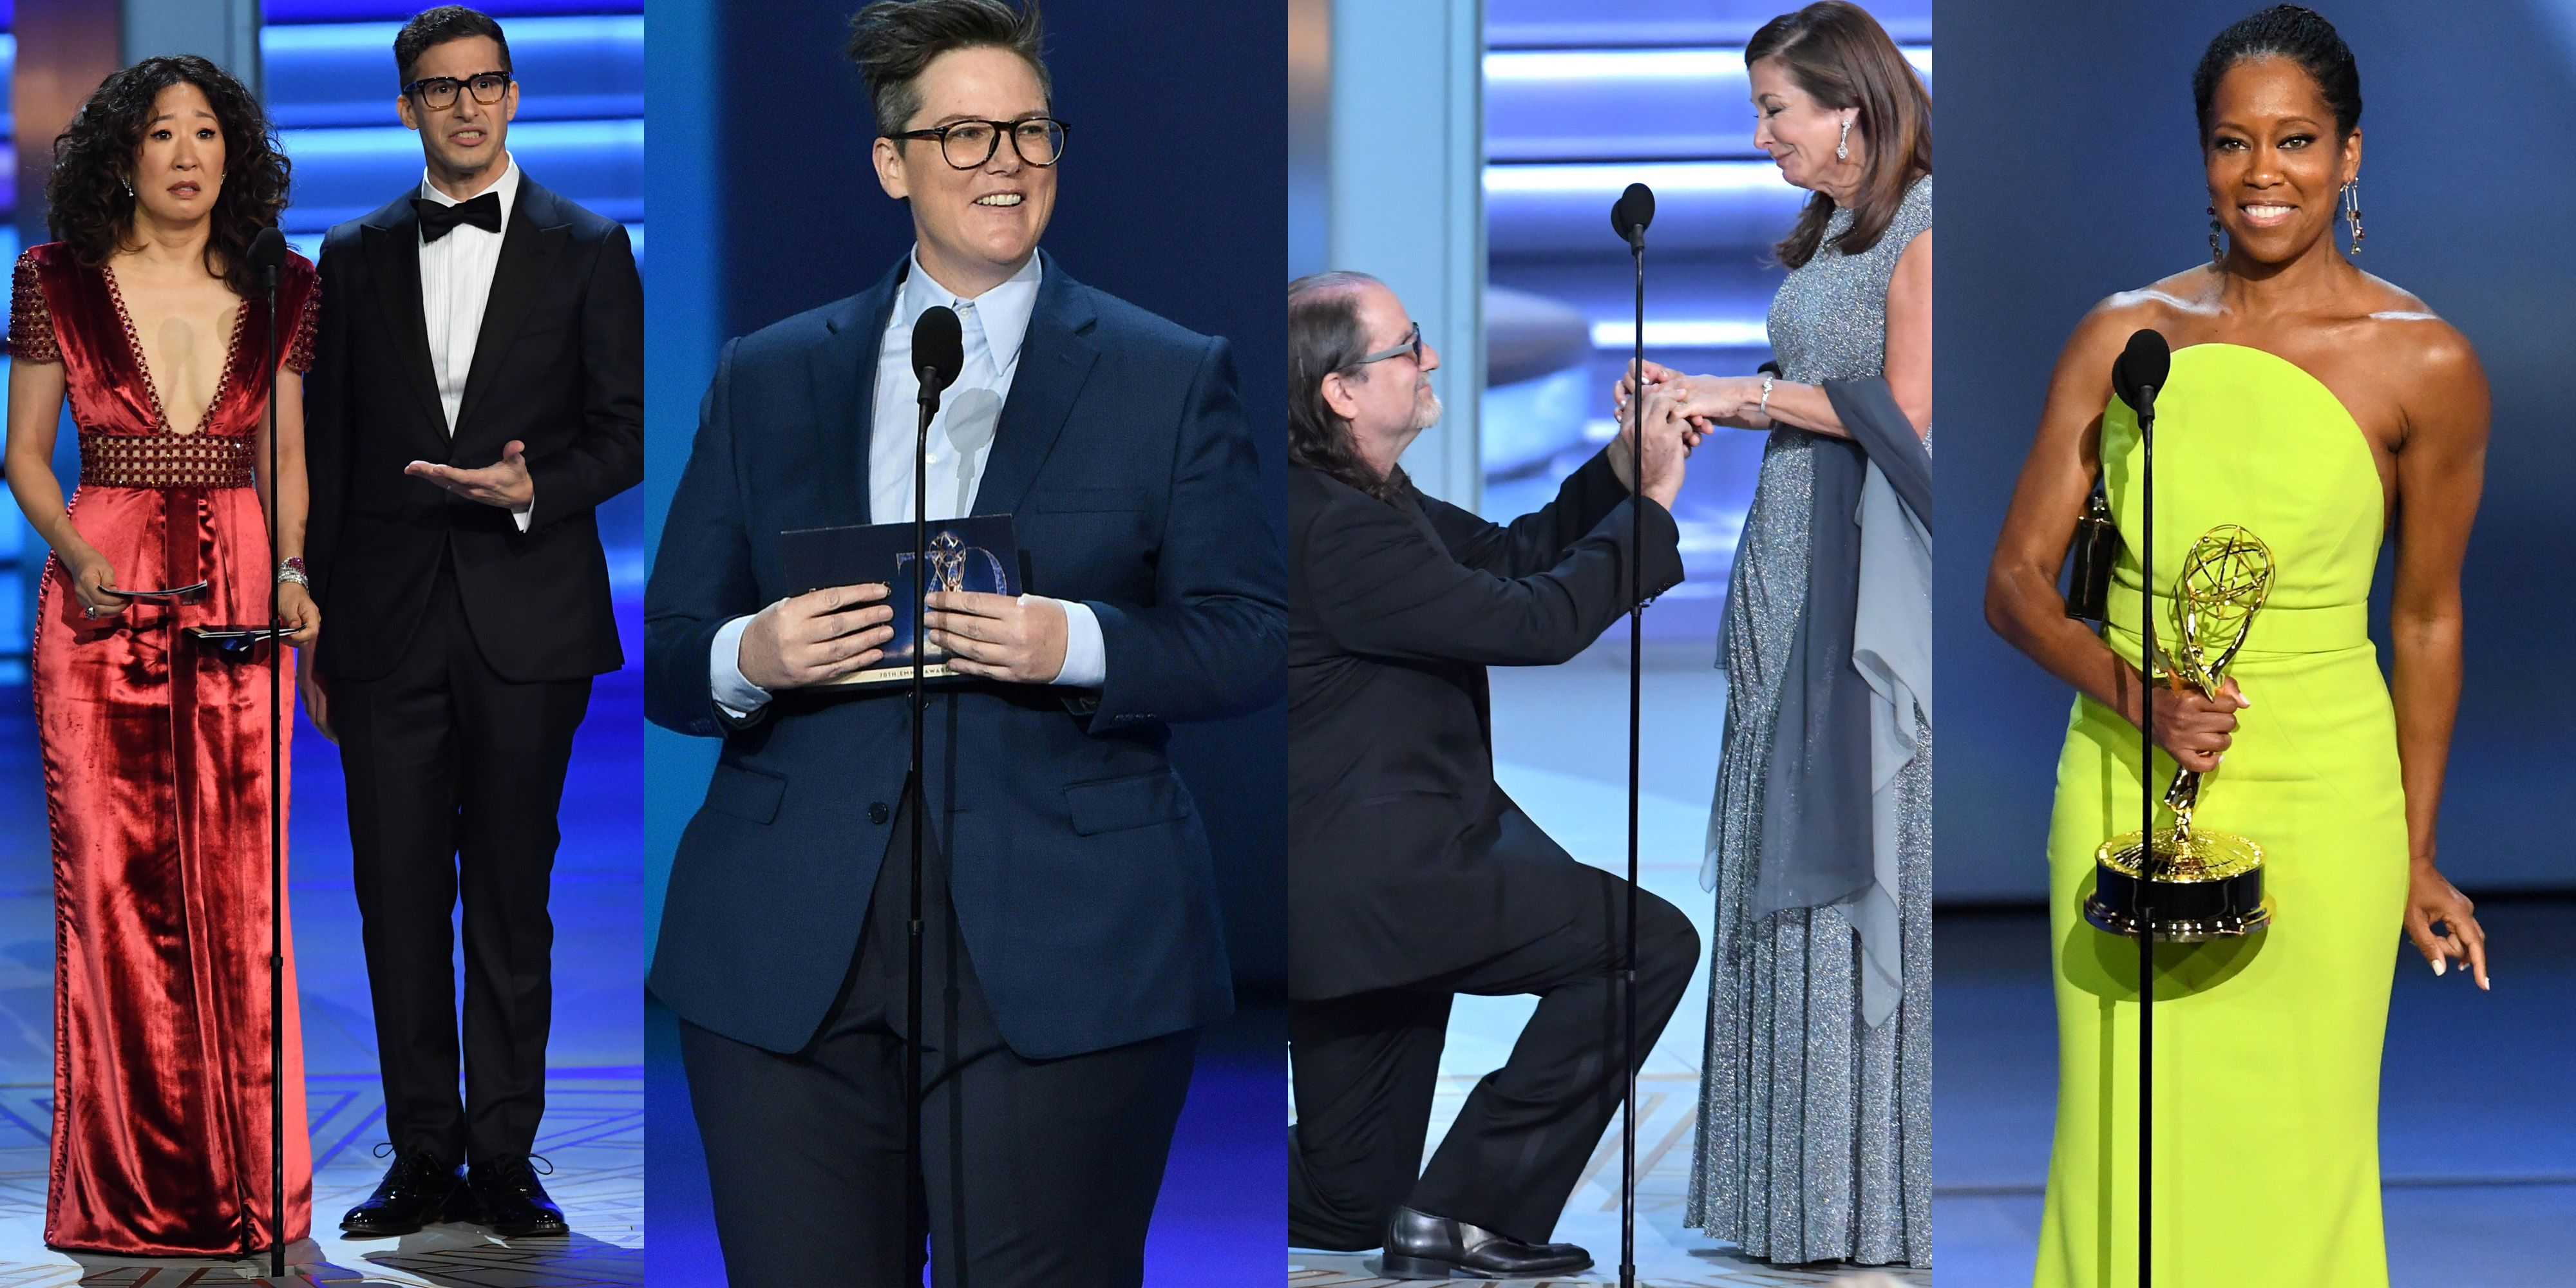 10 Important Moments You May Have Missed from the 2019 Emmys